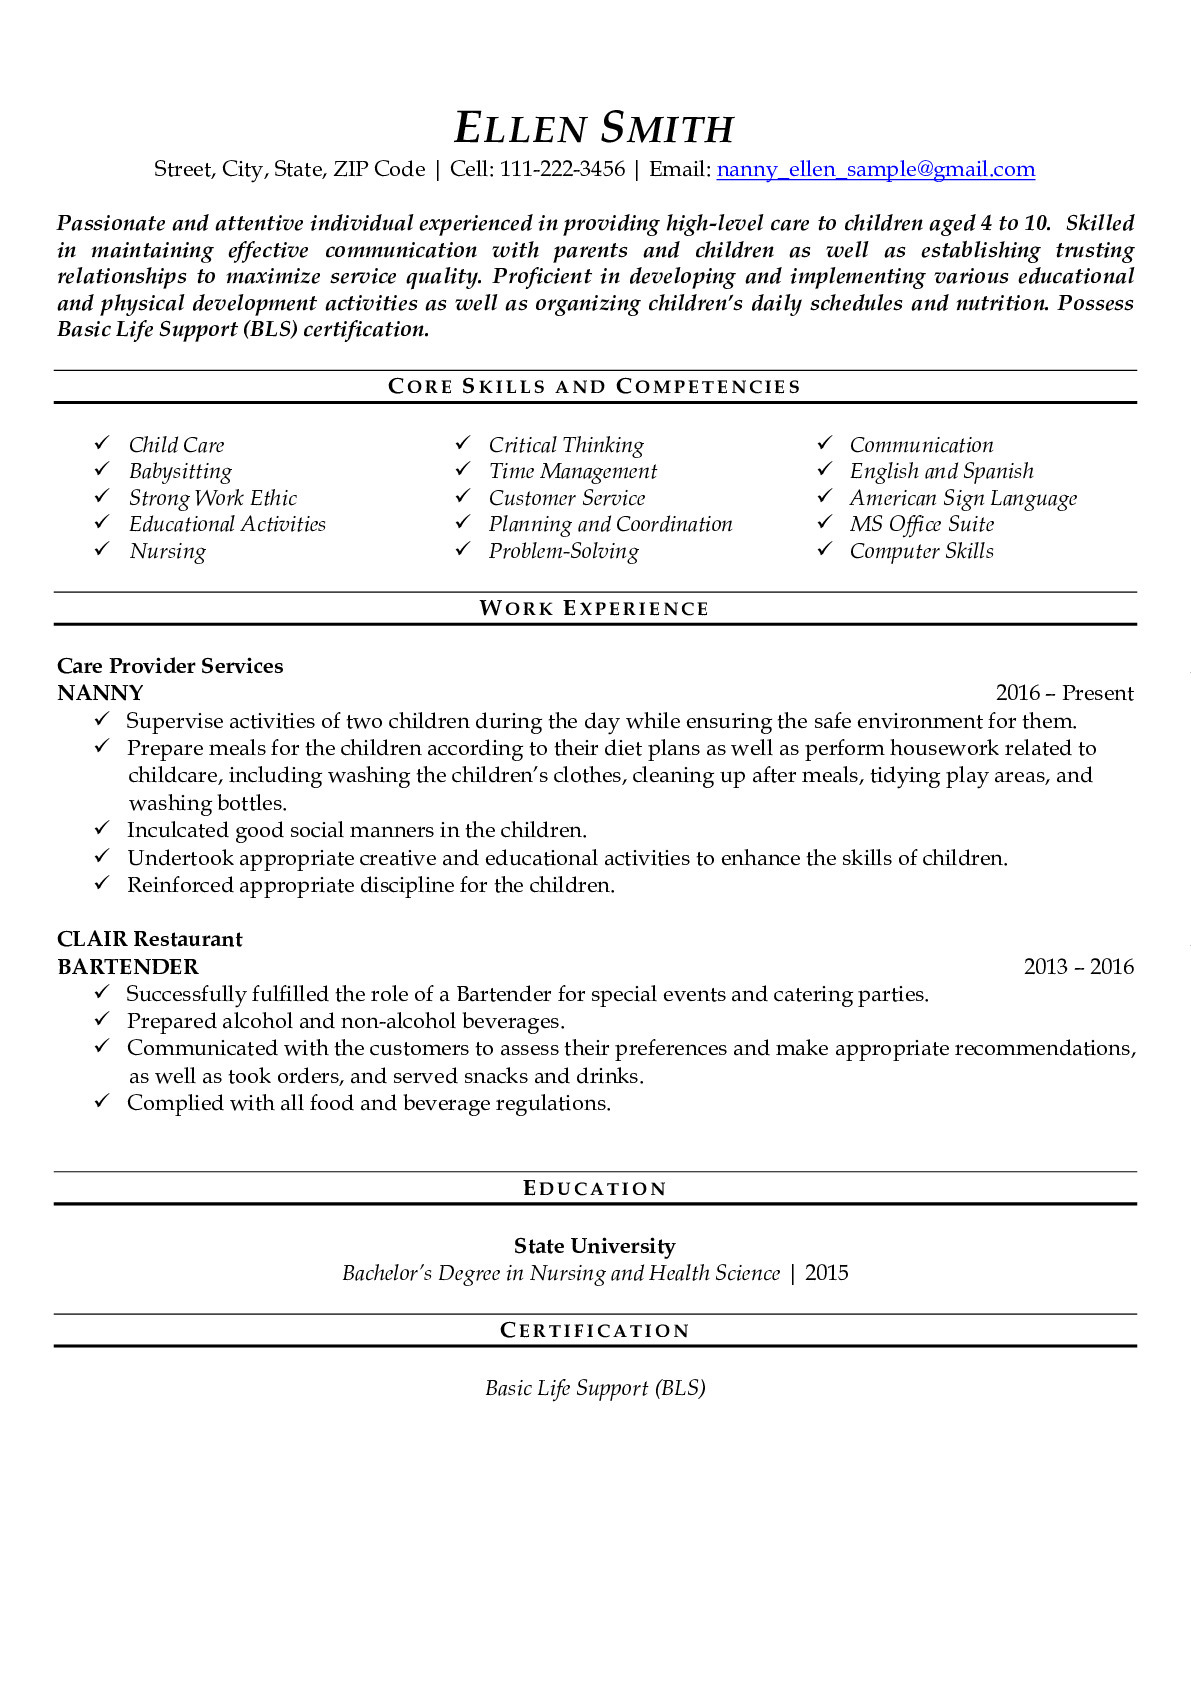 Resume Example for Nanny